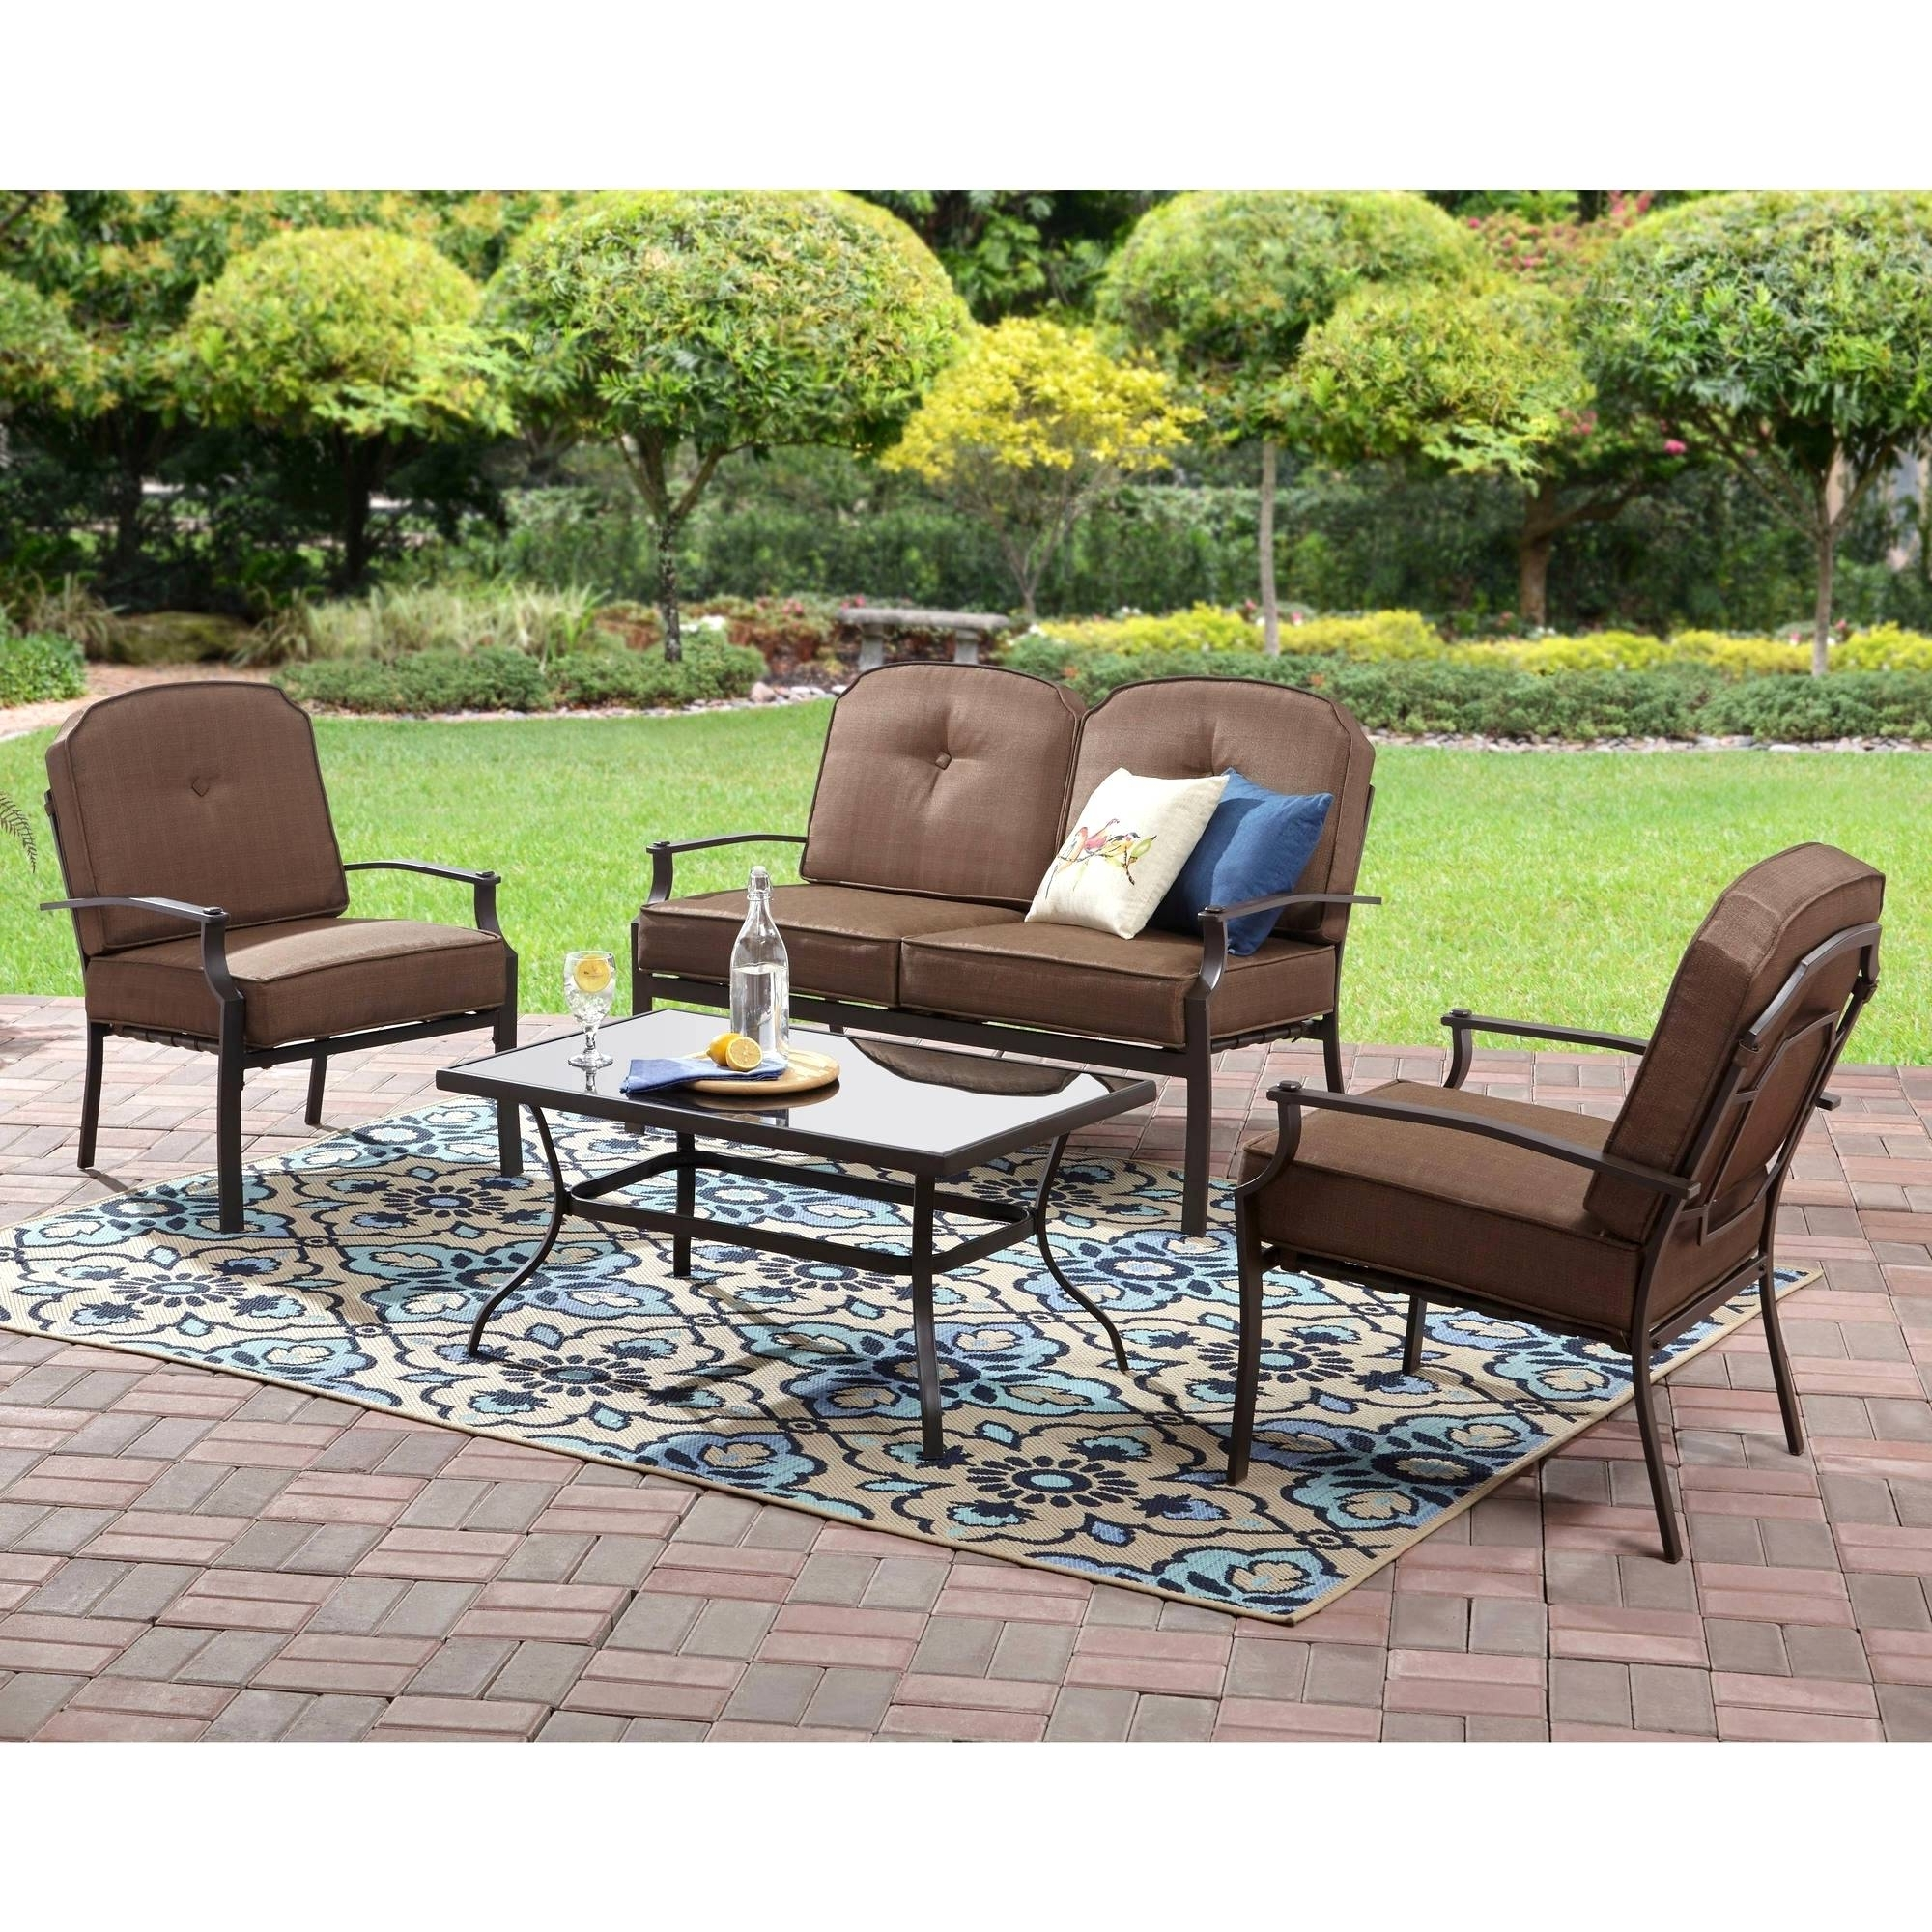 2019 Inexpensive Patio Conversation Sets Inside Outdoor : Outdoor Patio Clearance Inexpensive Patio Sets Patio (View 1 of 20)